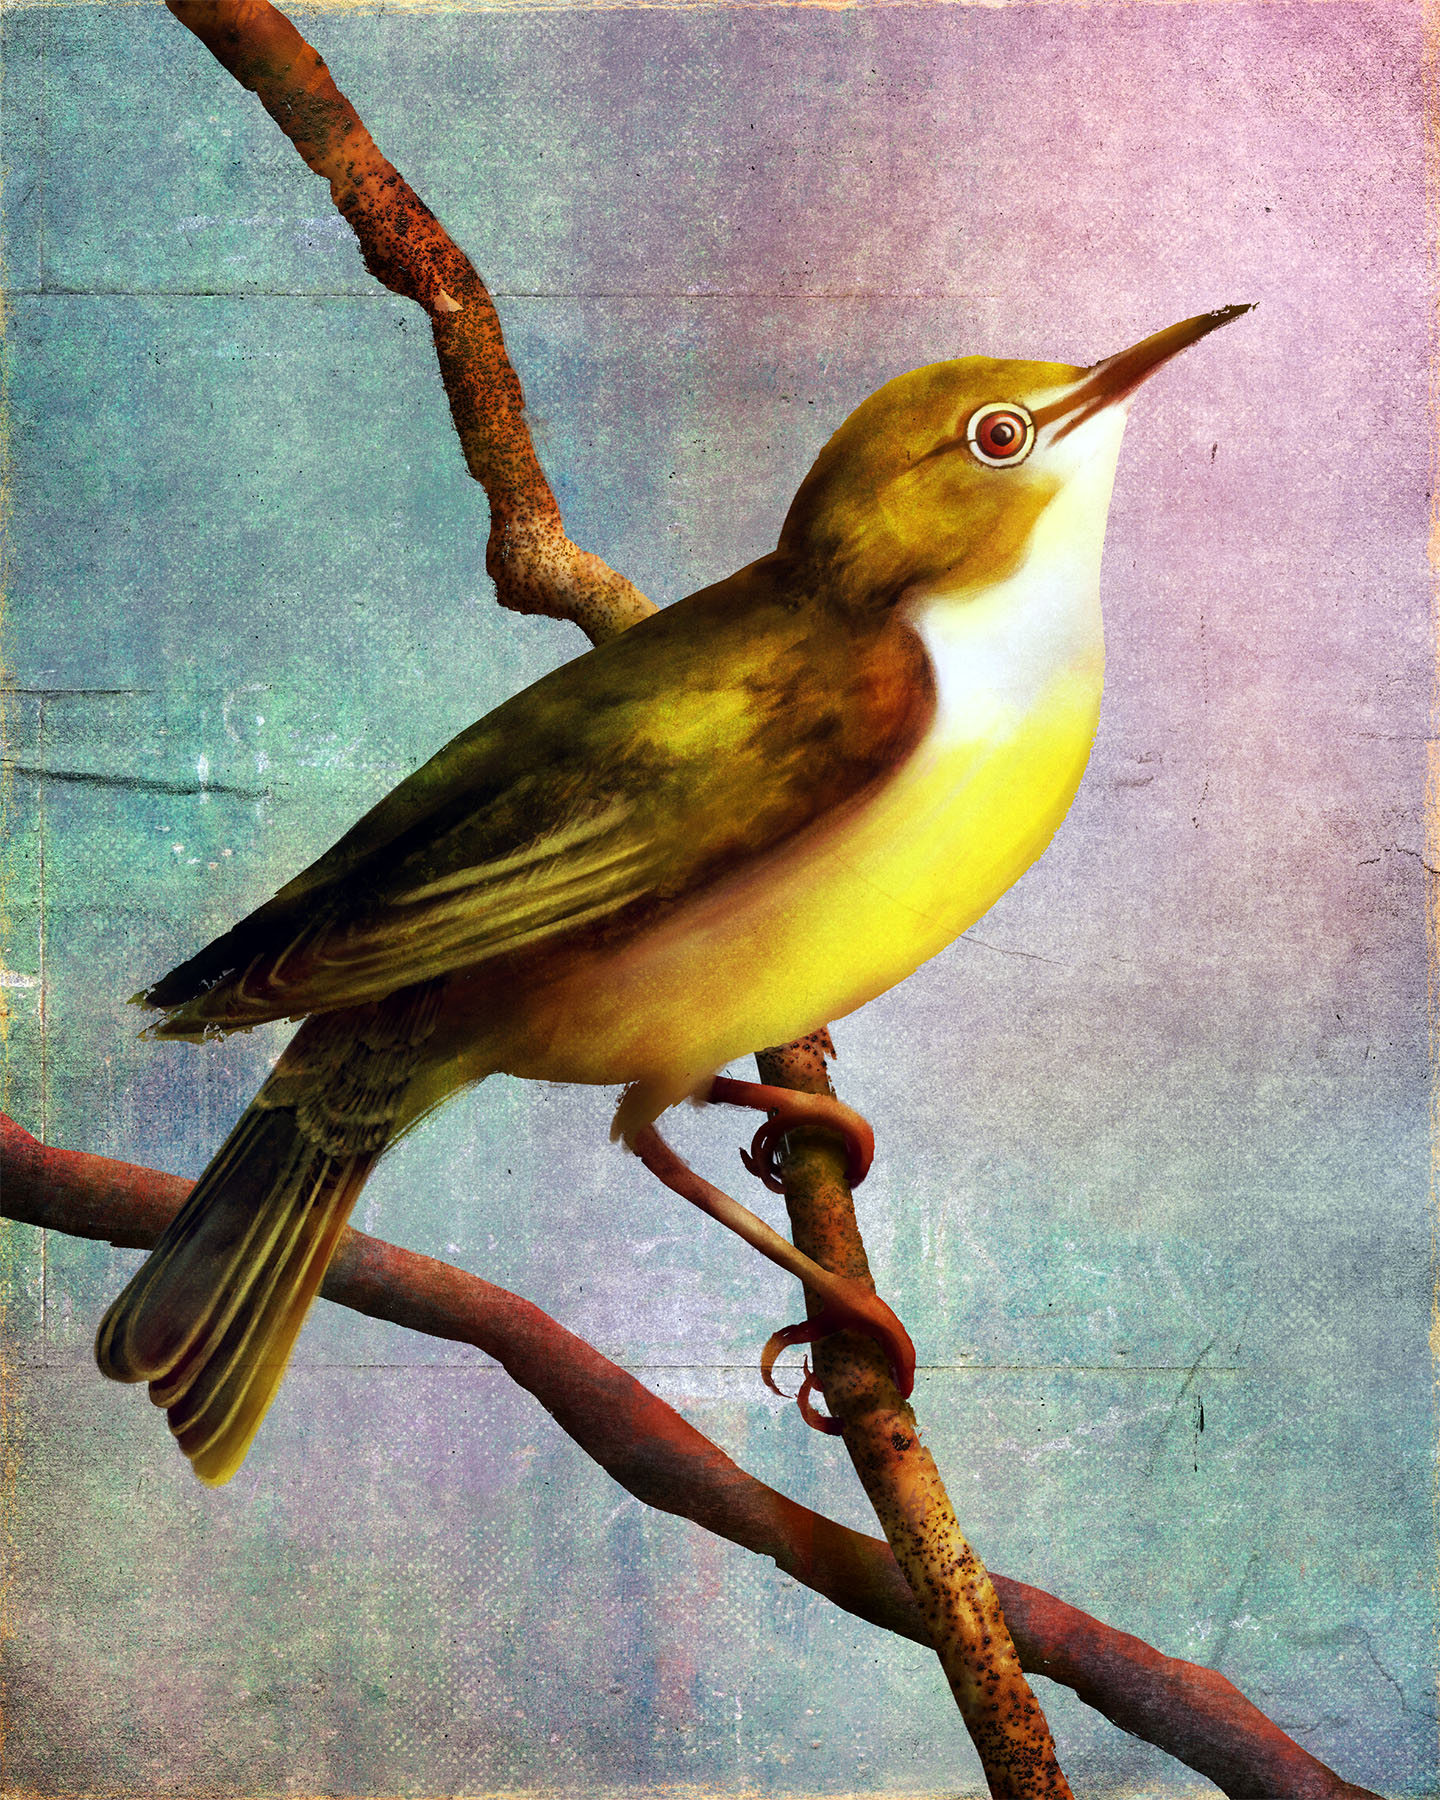 Animals_Long-Billed White-Eye_Rukia longirostra_Illustration_Julie Smits.jpg